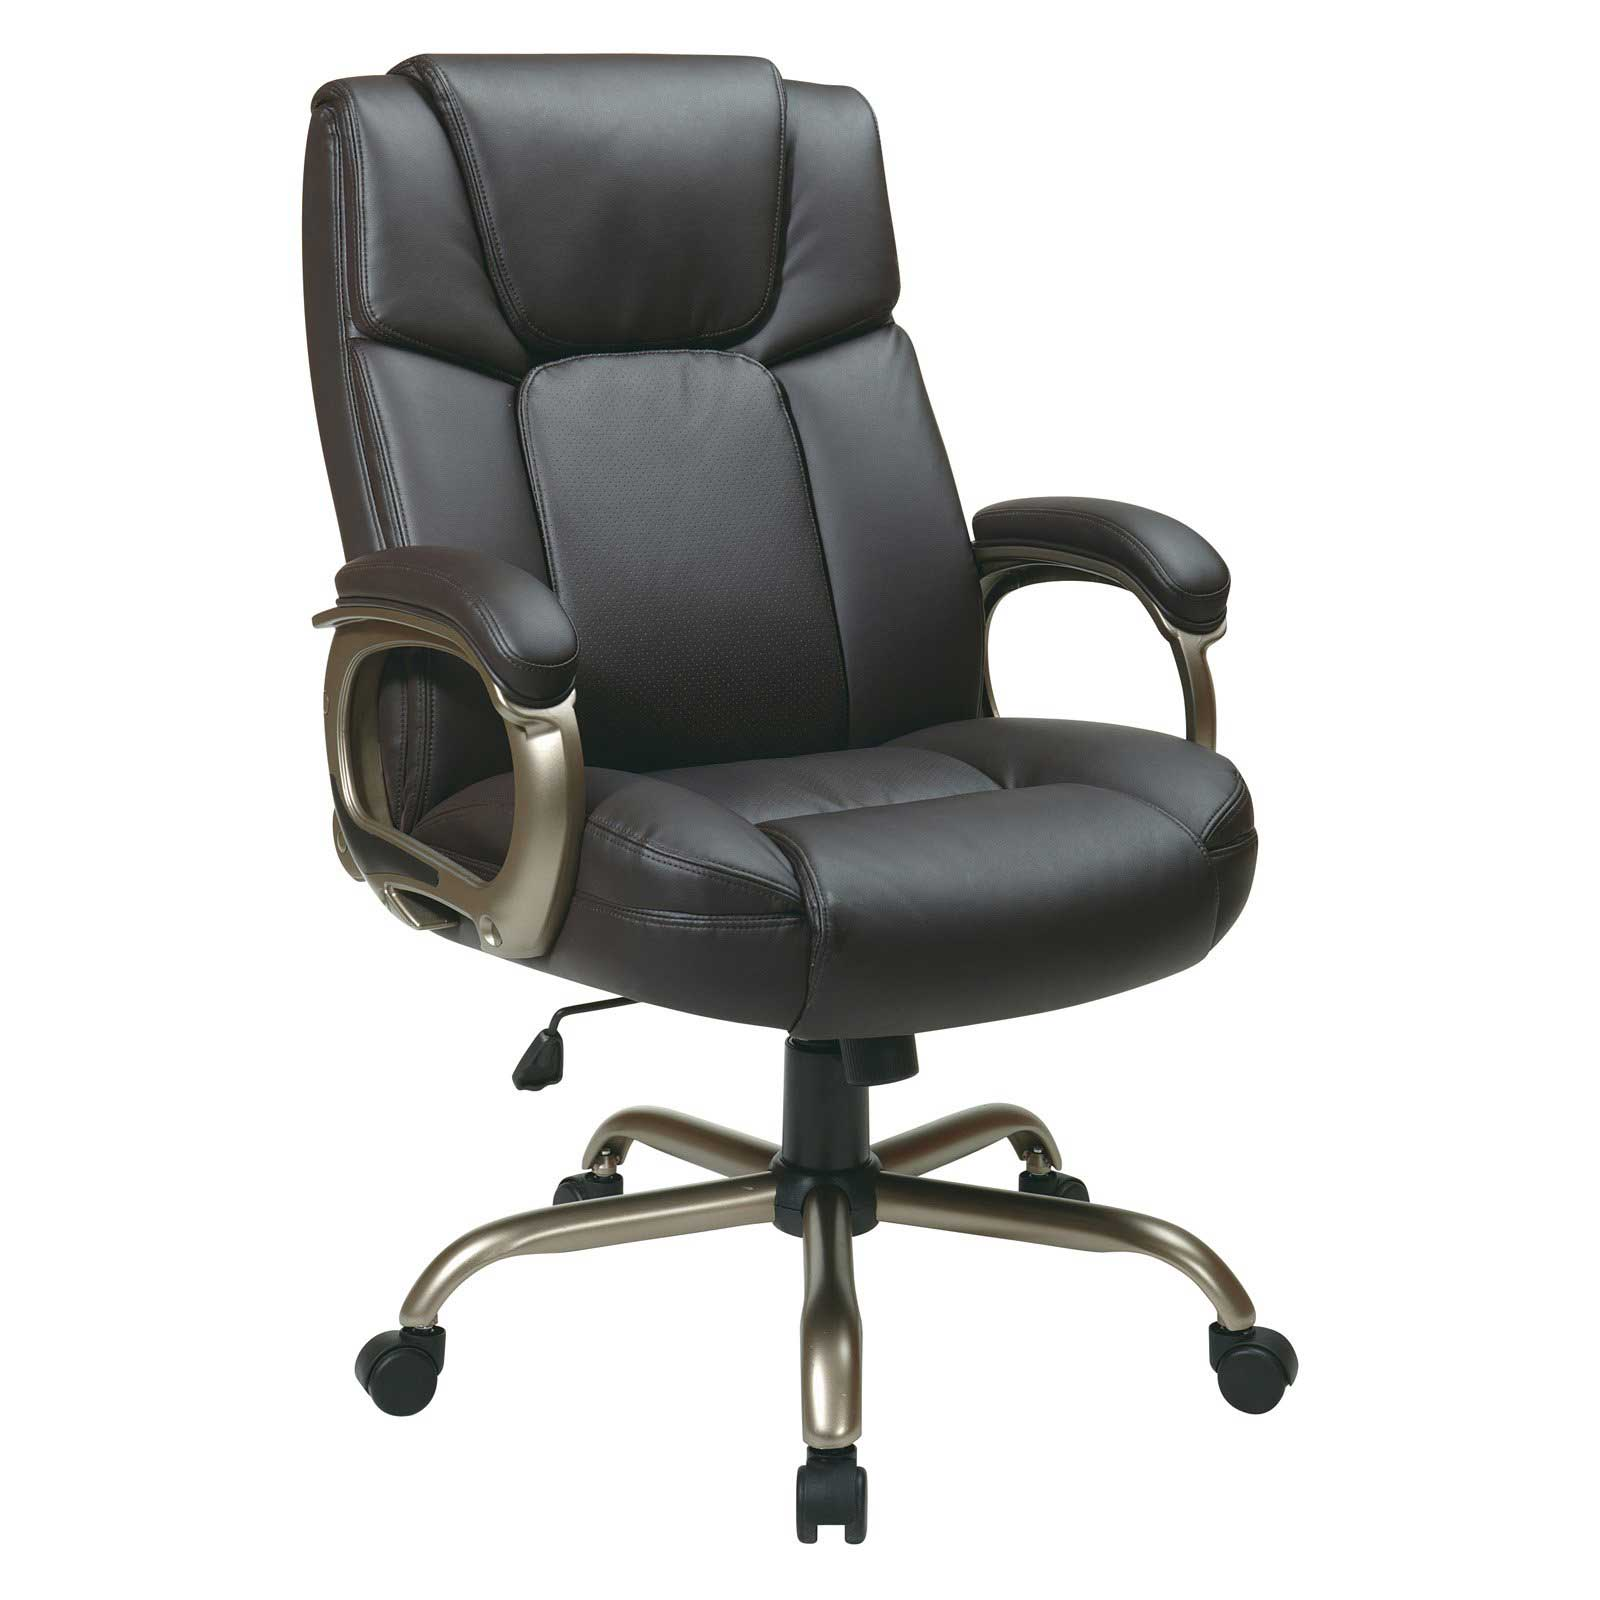 Office Star Big Mans Office Chair in Espresso Leather